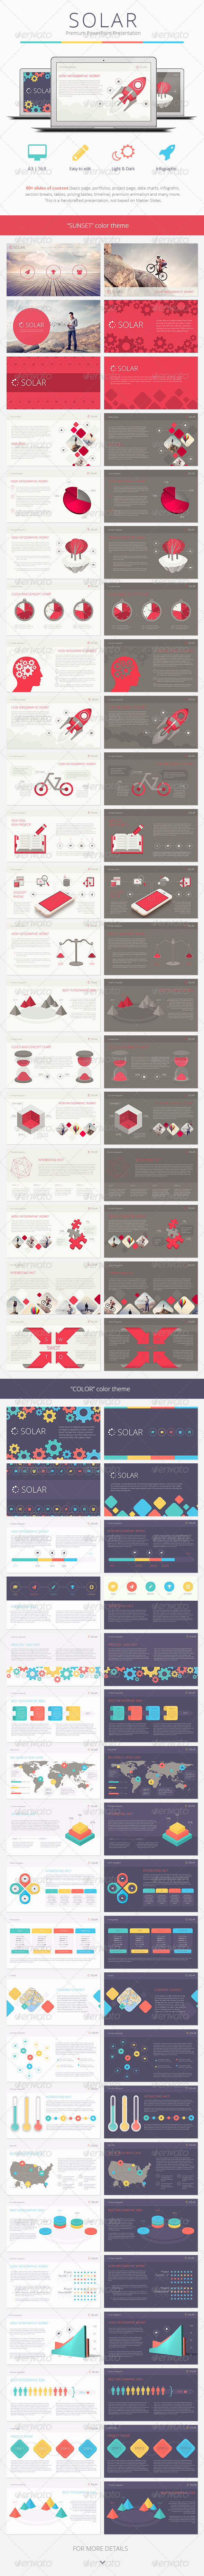 GraphicRiver Solar PowerPoint Presentation Template 8522839